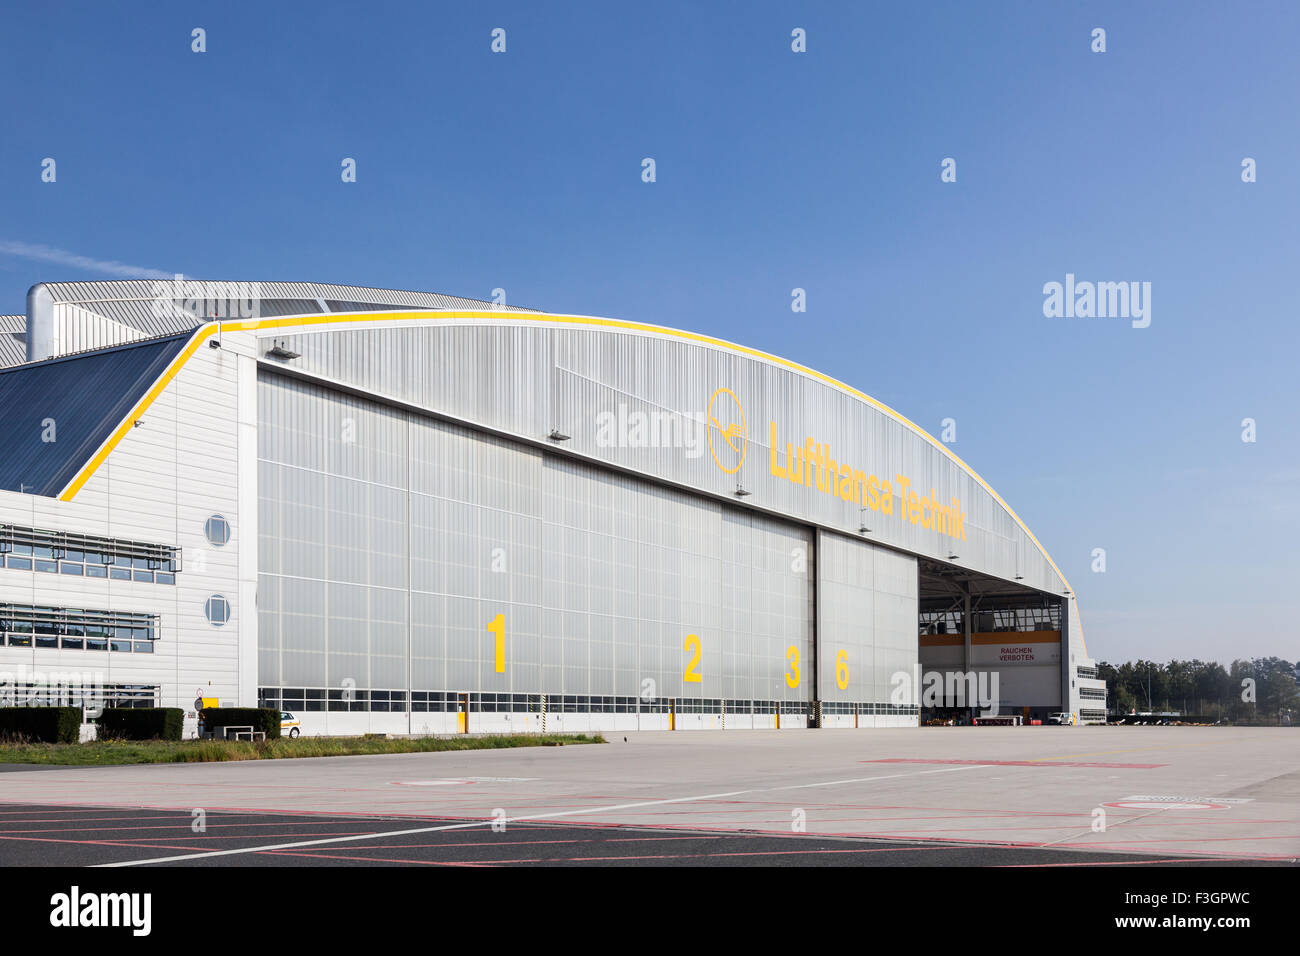 Lufthansa Technique Hangar at the Frankfurt Airport - Stock Image